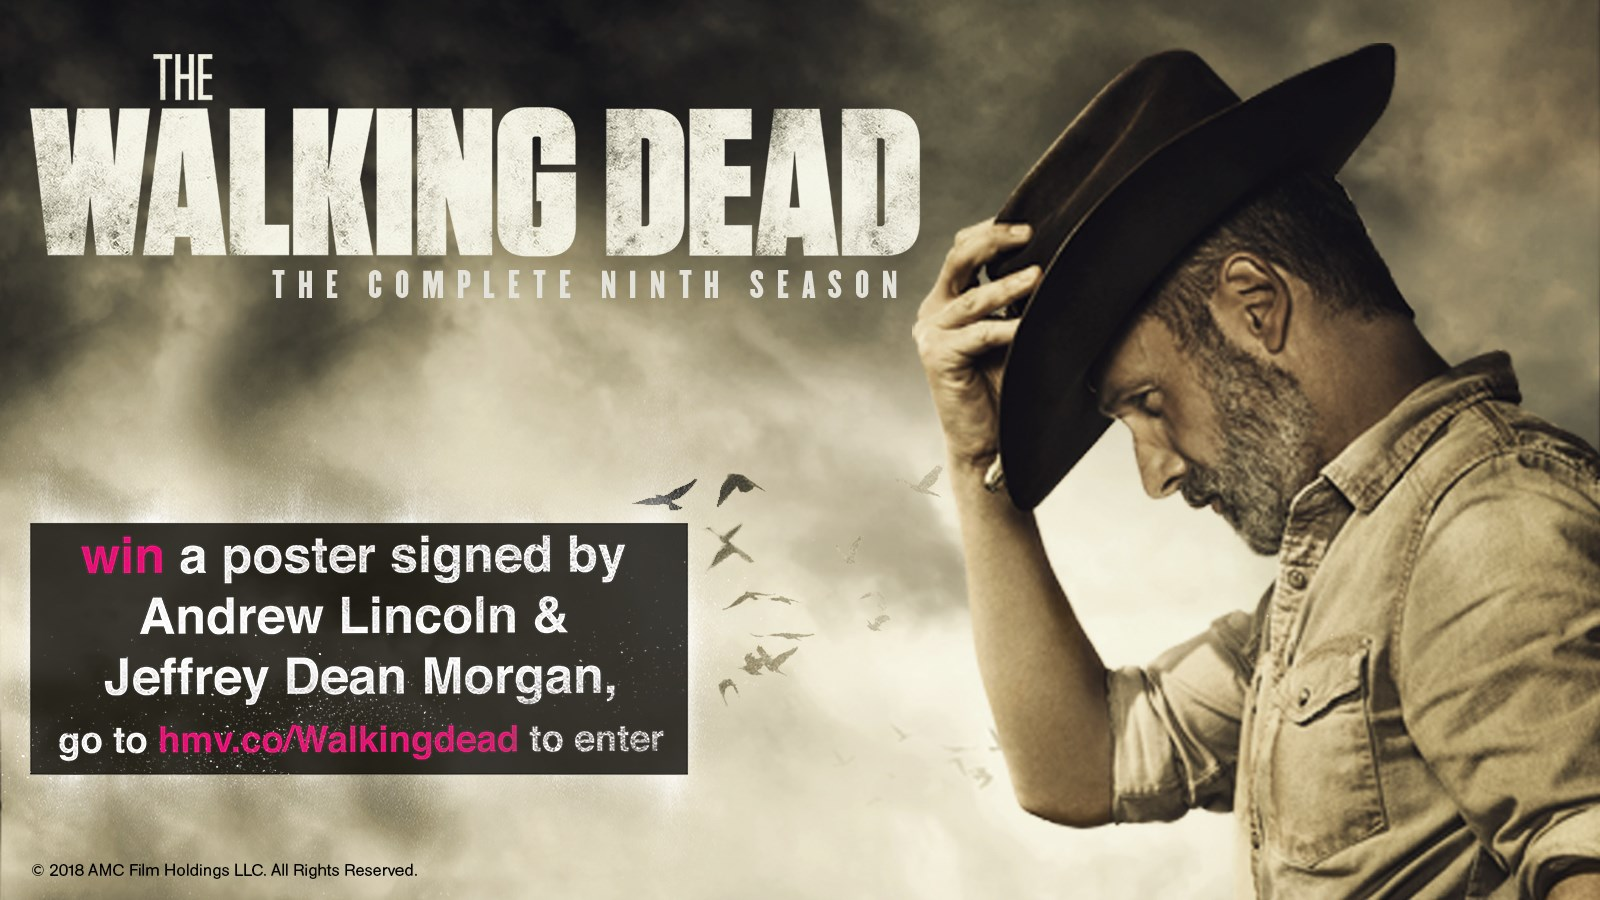 The Walking Dead Prize Draw